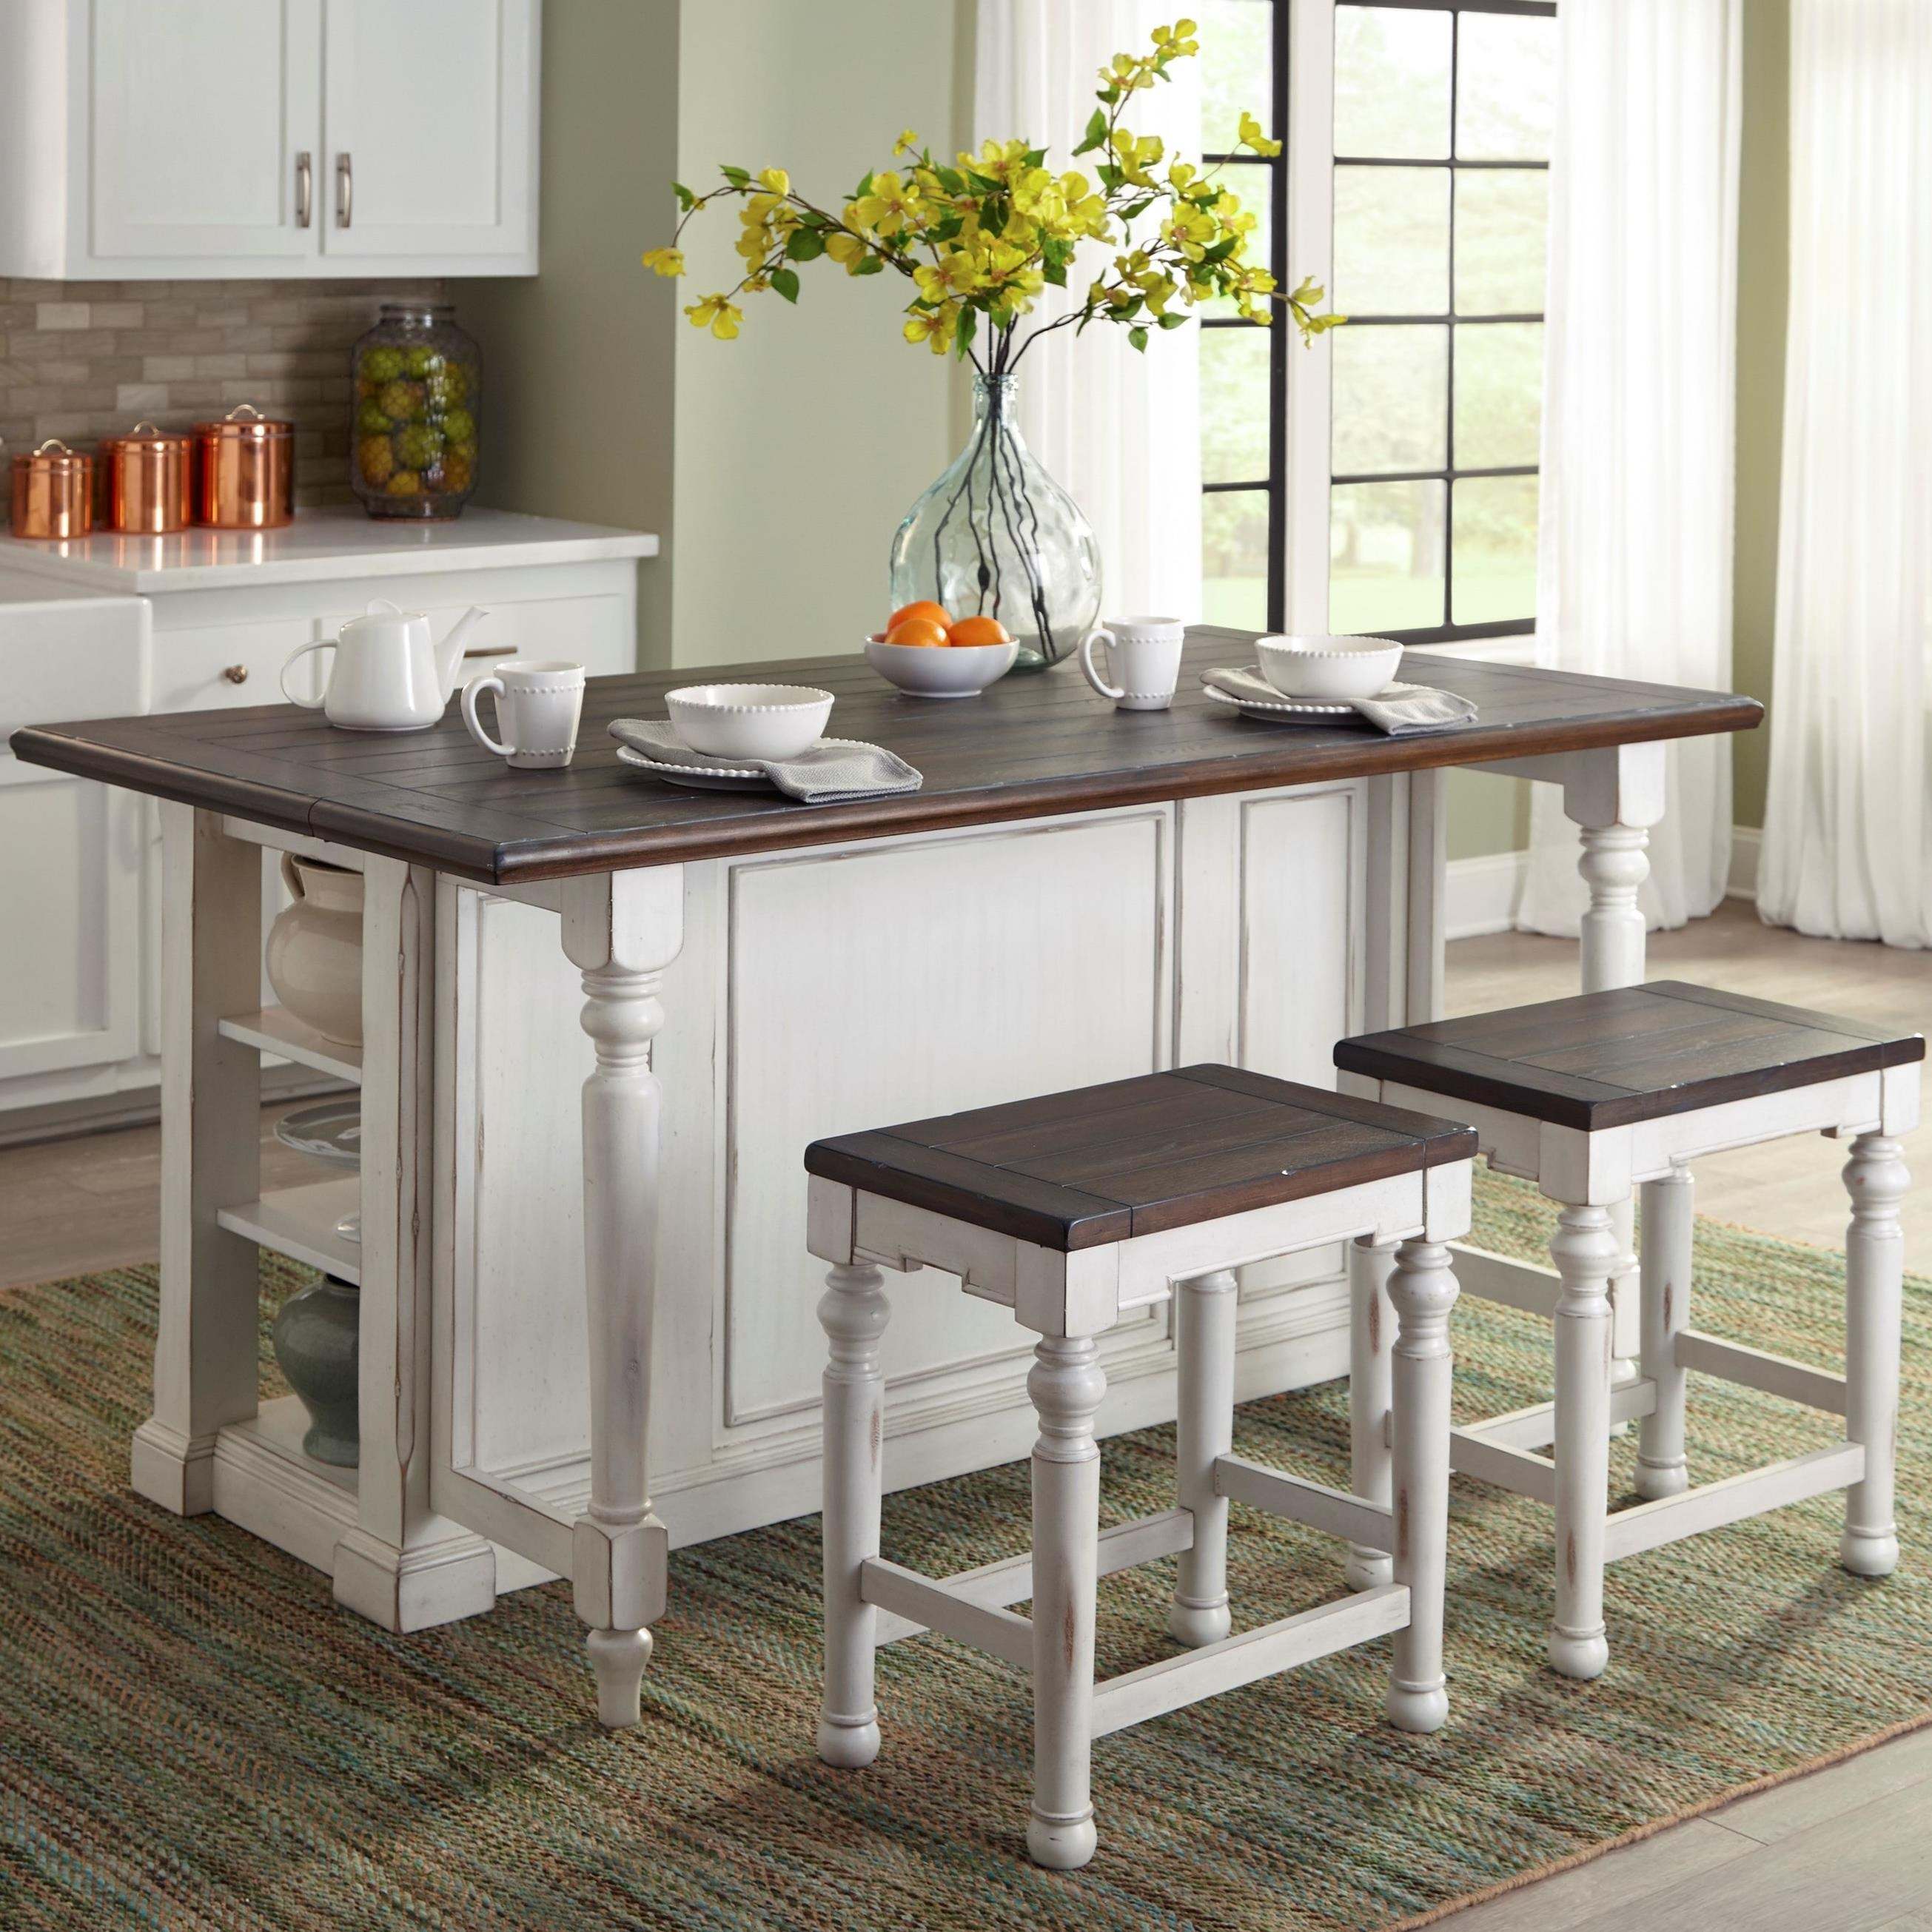 kitchen island set metal frame outdoor 3 piece with gate leg by sunny designs wolf and gardiner furniture